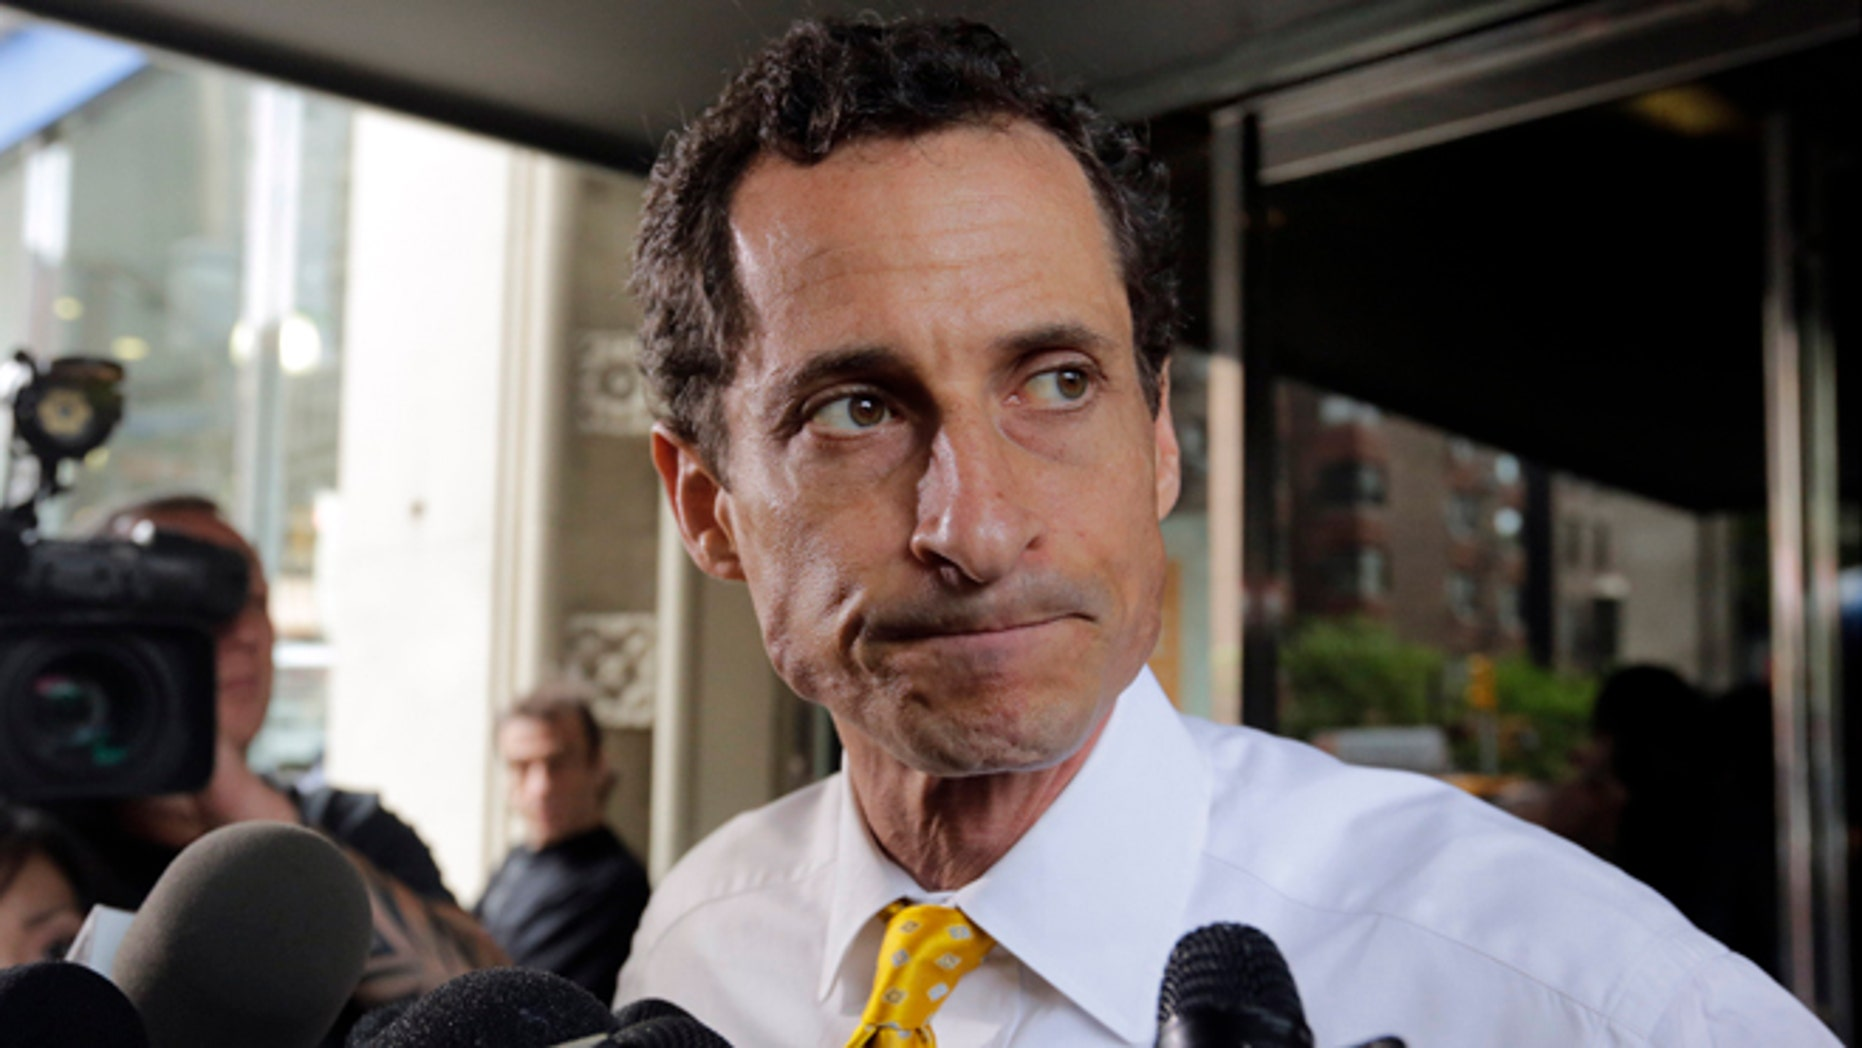 Anthony Weiner has been ordered to register as a sex offender as he nears the end of a 21-month prison sentence for having illicit online contact with a 15-year-old girl.